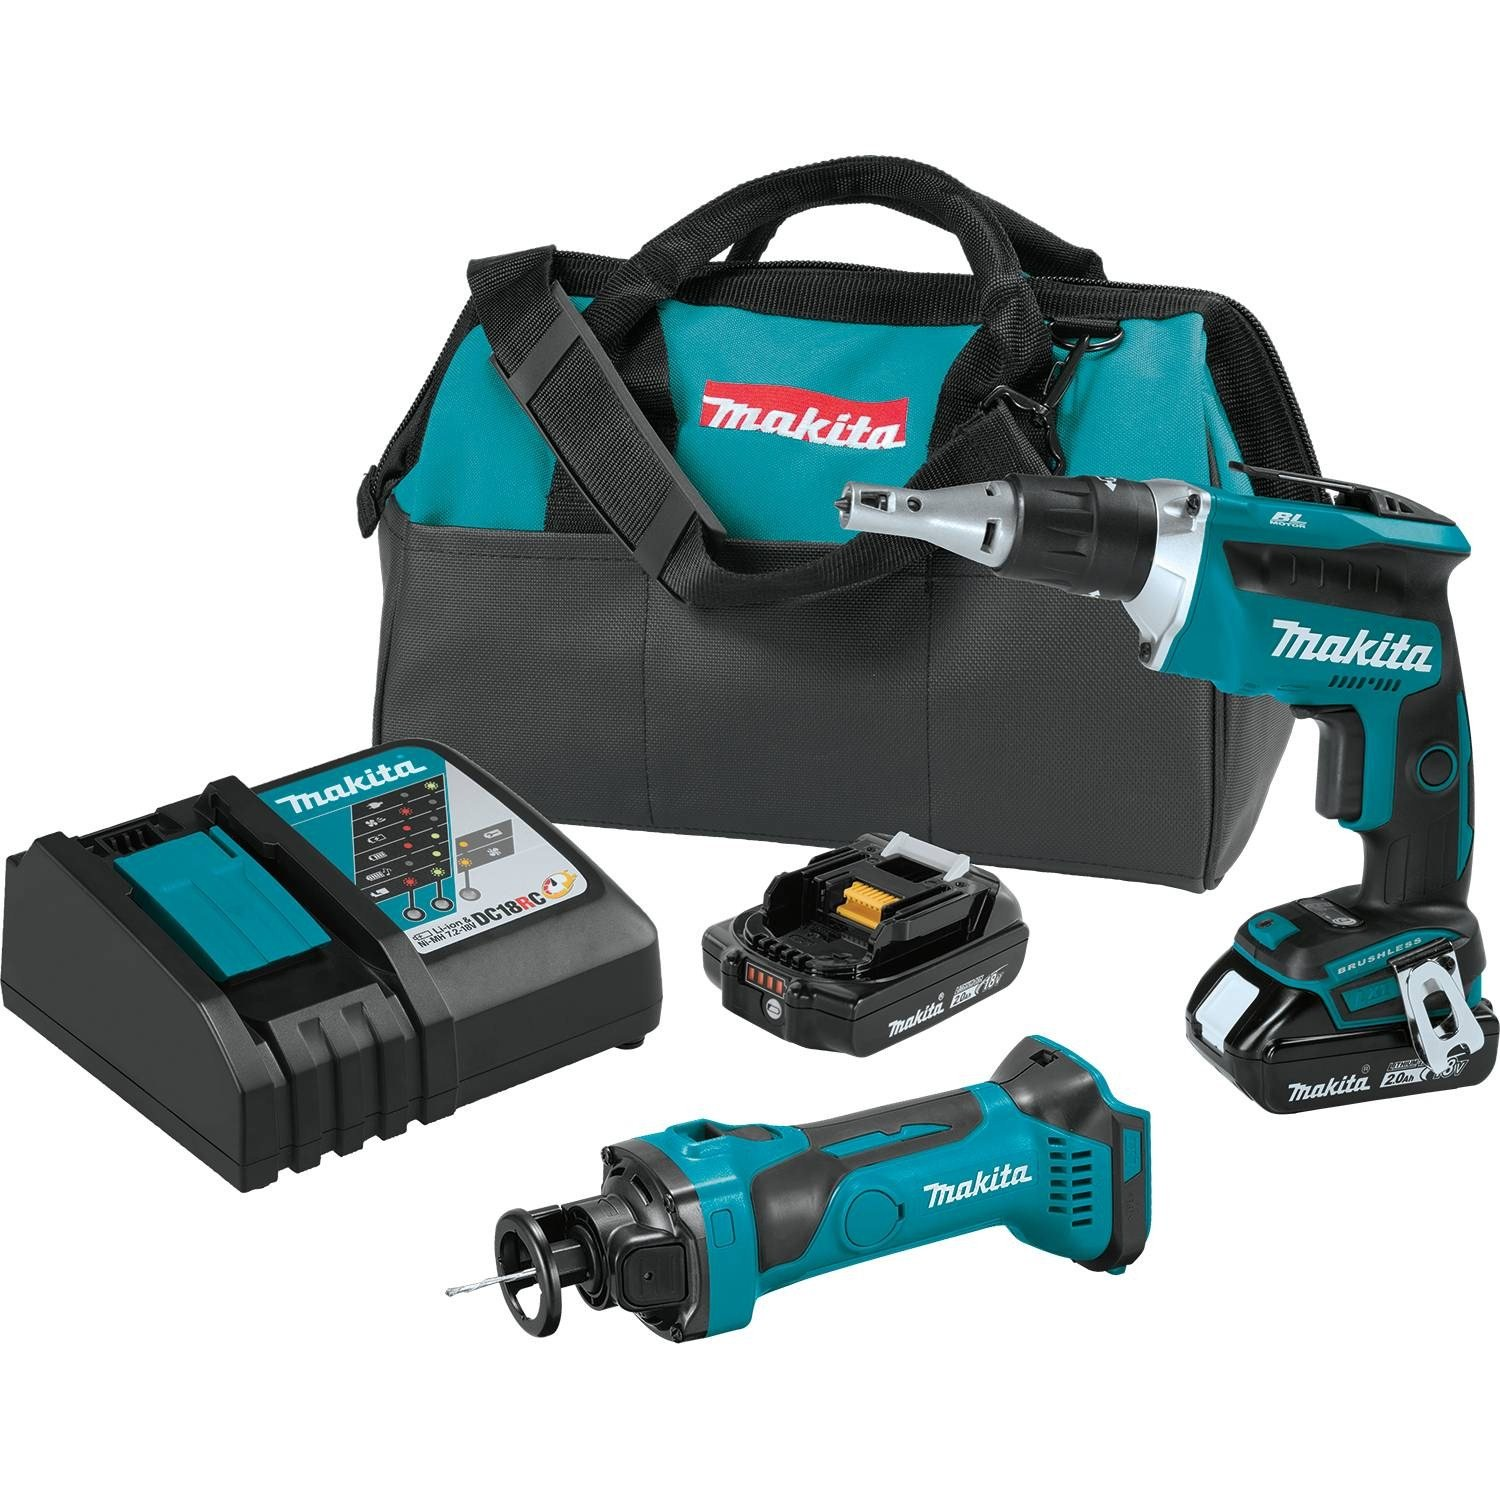 Makita XT255R 18V LXT Lithium-Ion COMPACT Cordless 2-Pc. Combo Kit 2.0Ah